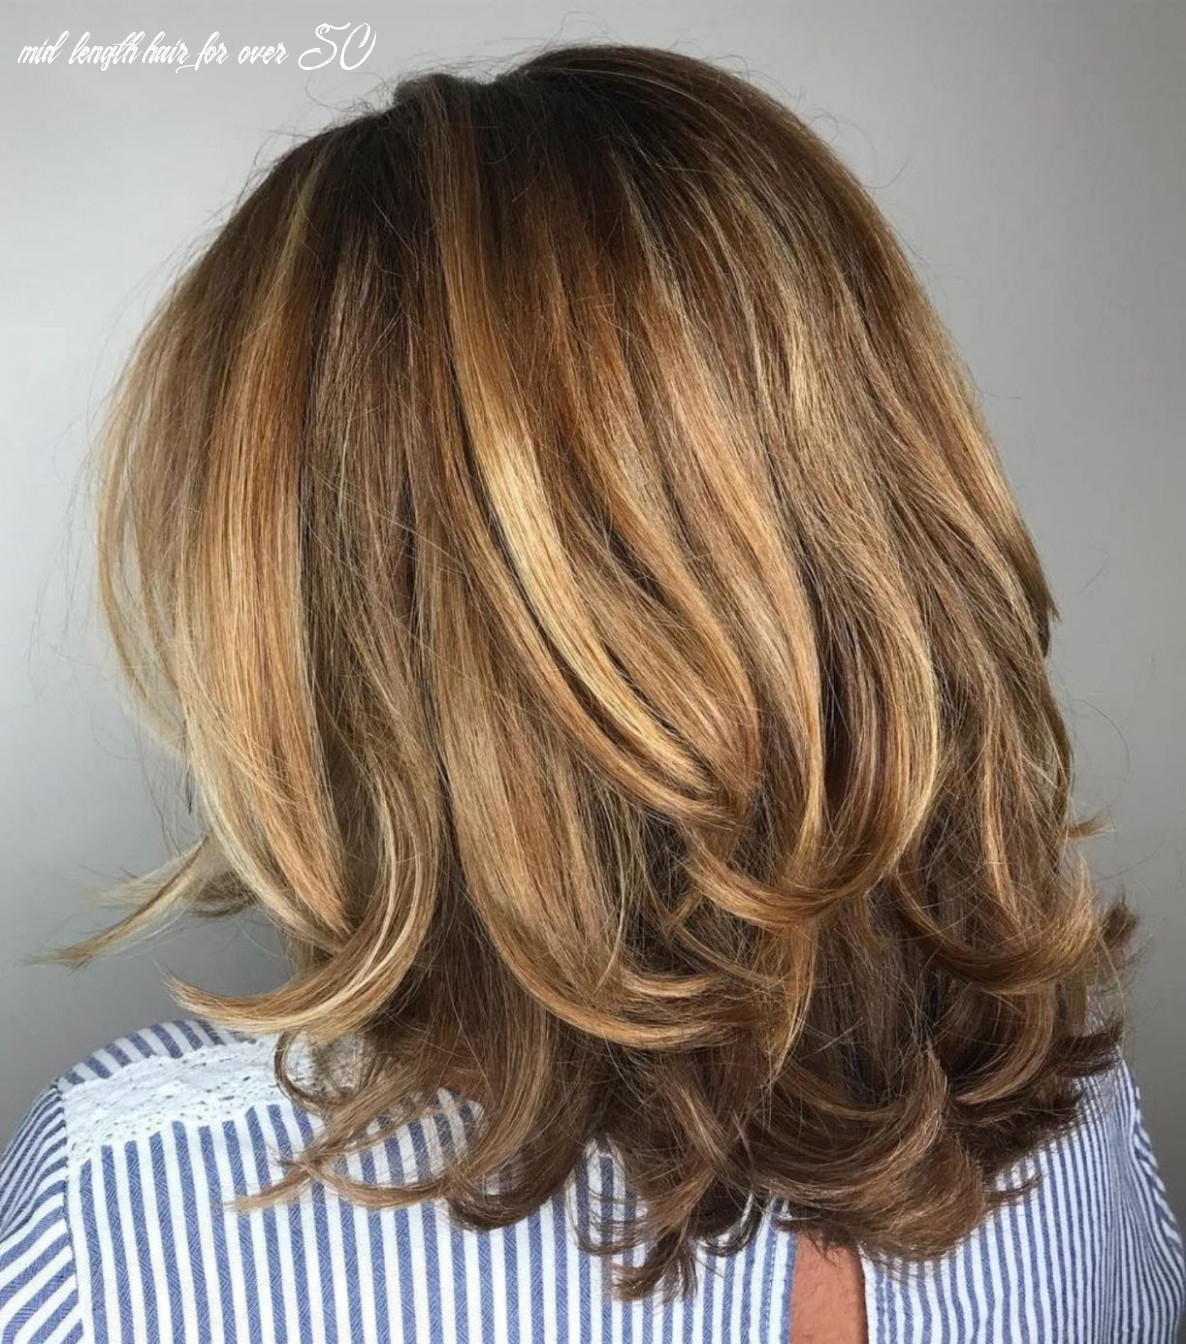 11 modern haircuts for women over 11 with extra zing | modern